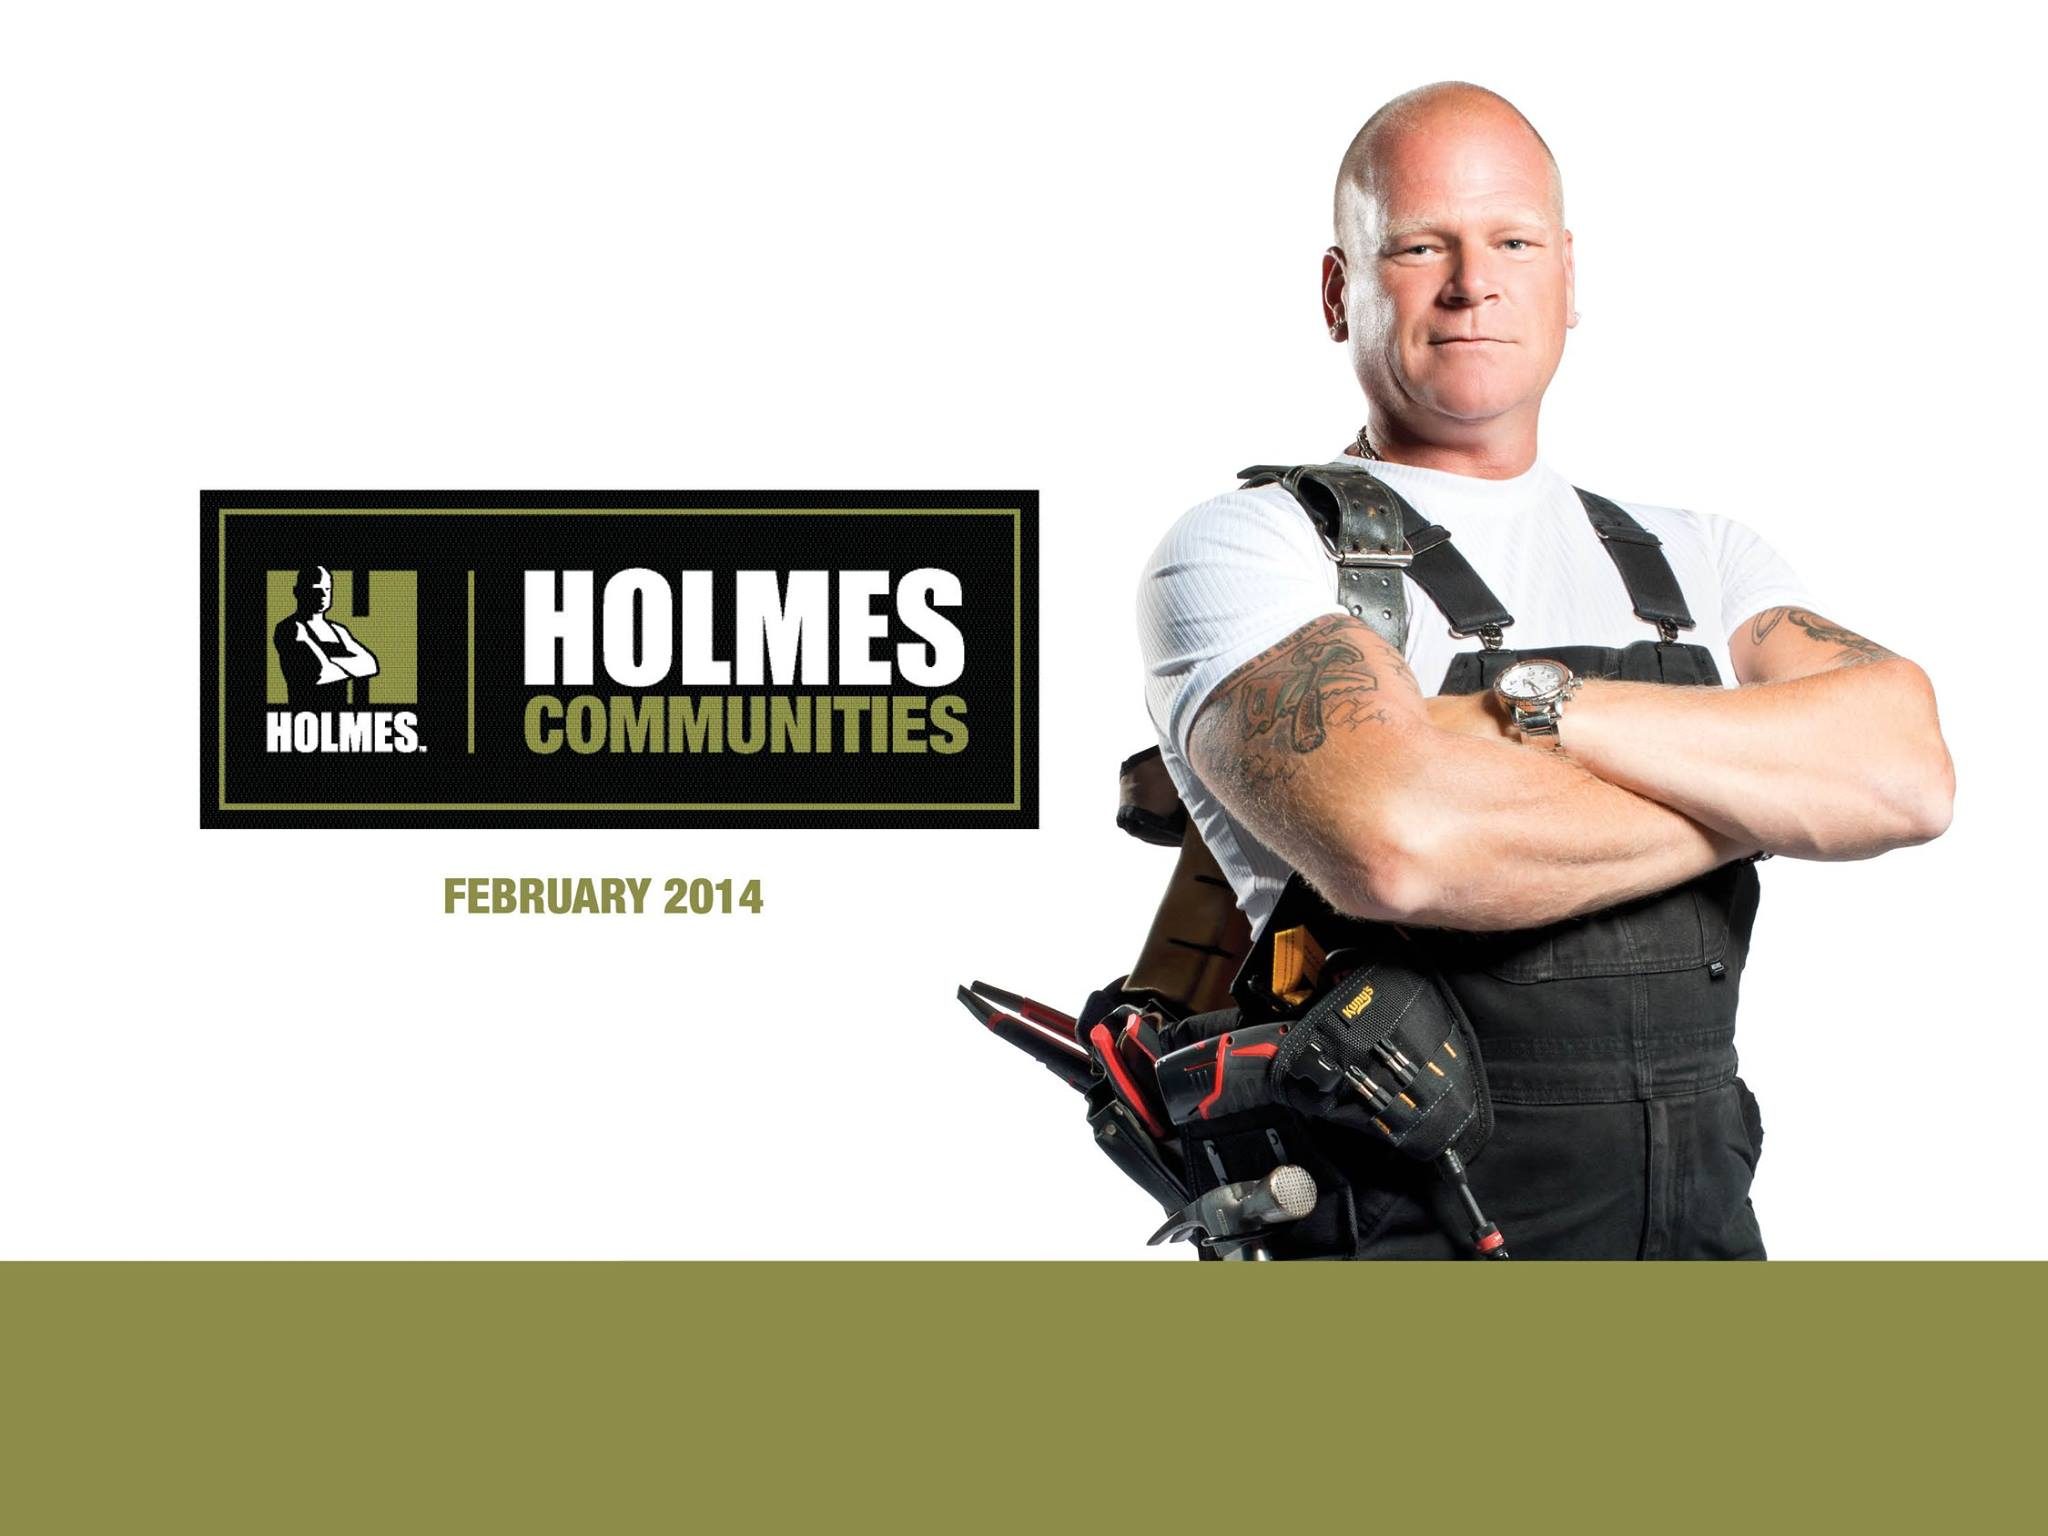 Holmes Communities